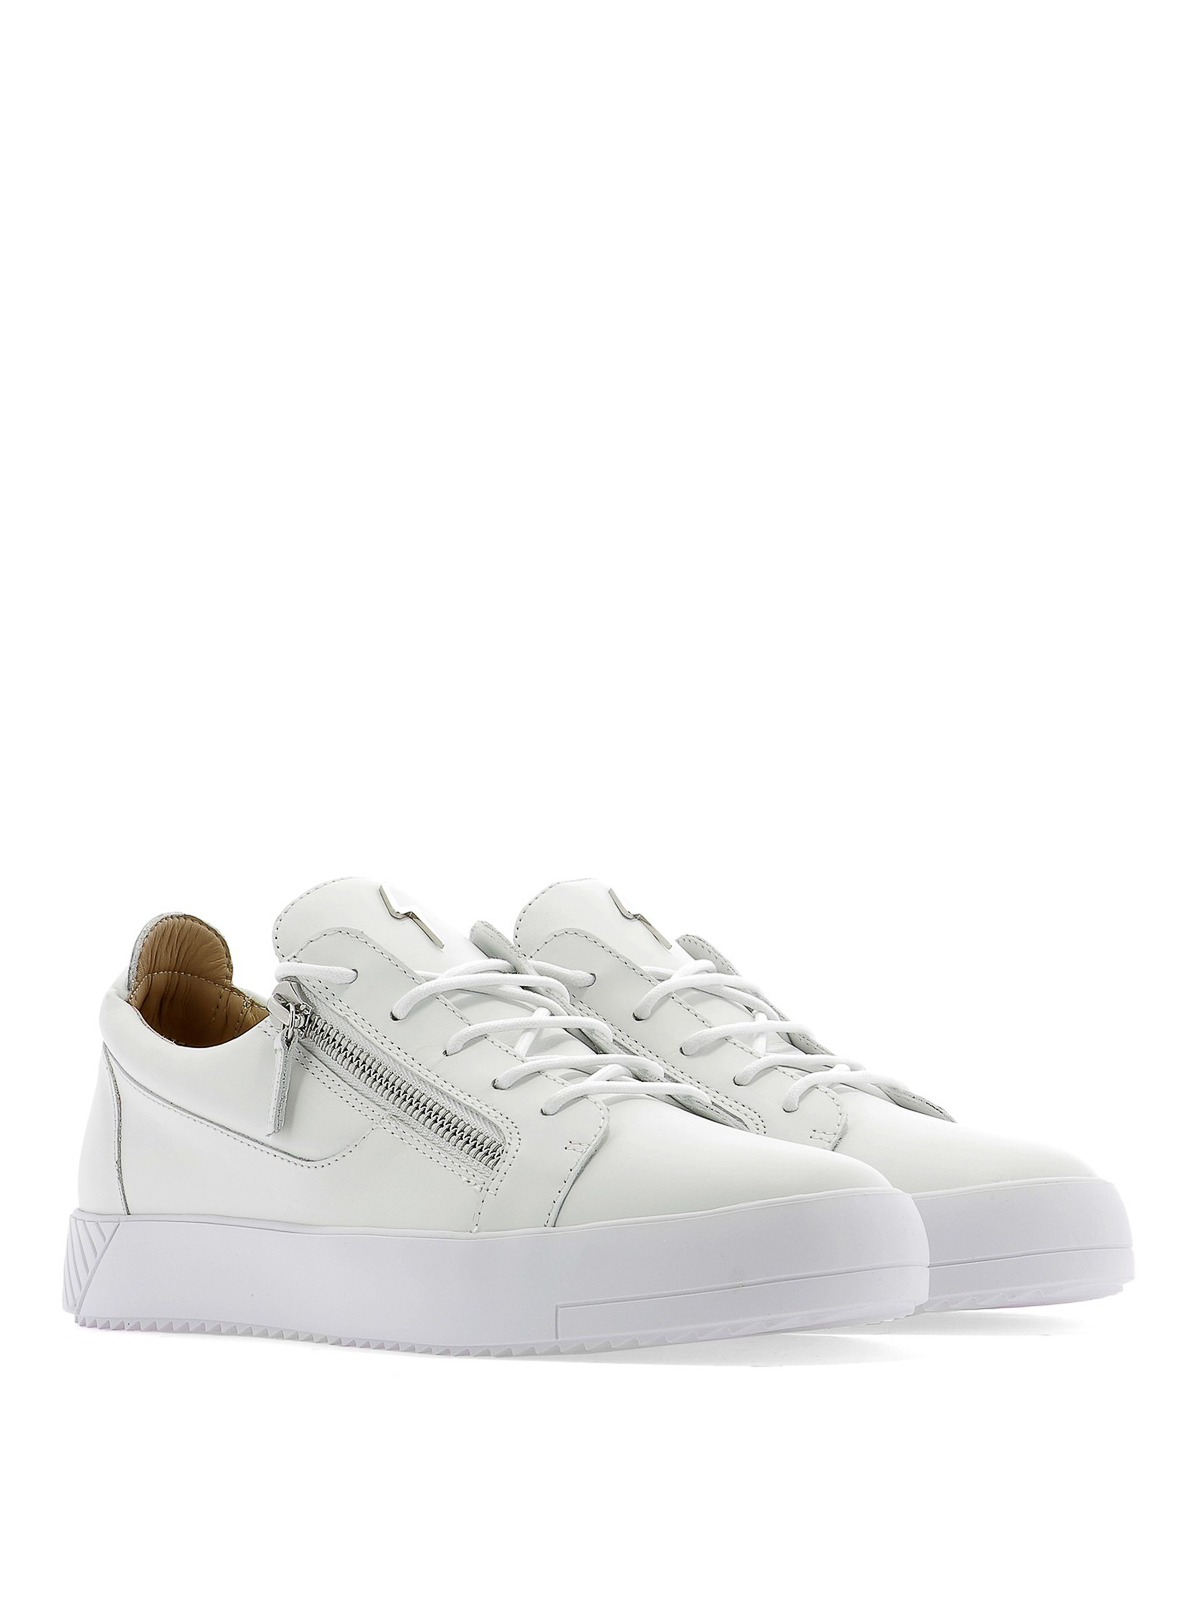 Thunder metal detail leather sneakers